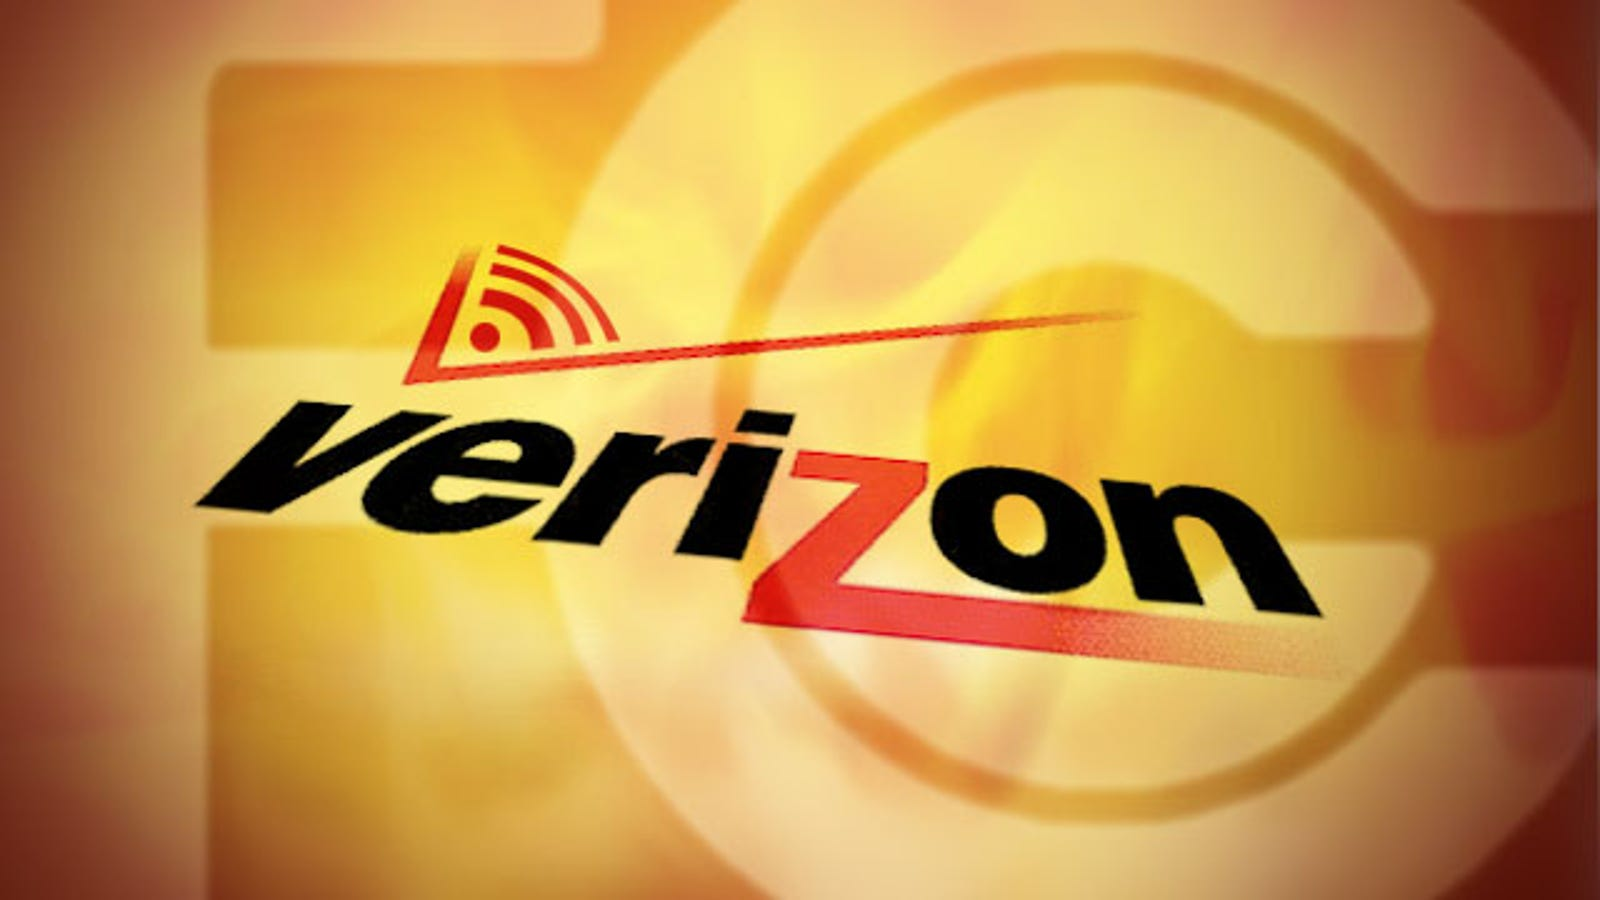 The Right to Tether: What the Verizon/FCC Settlement Means